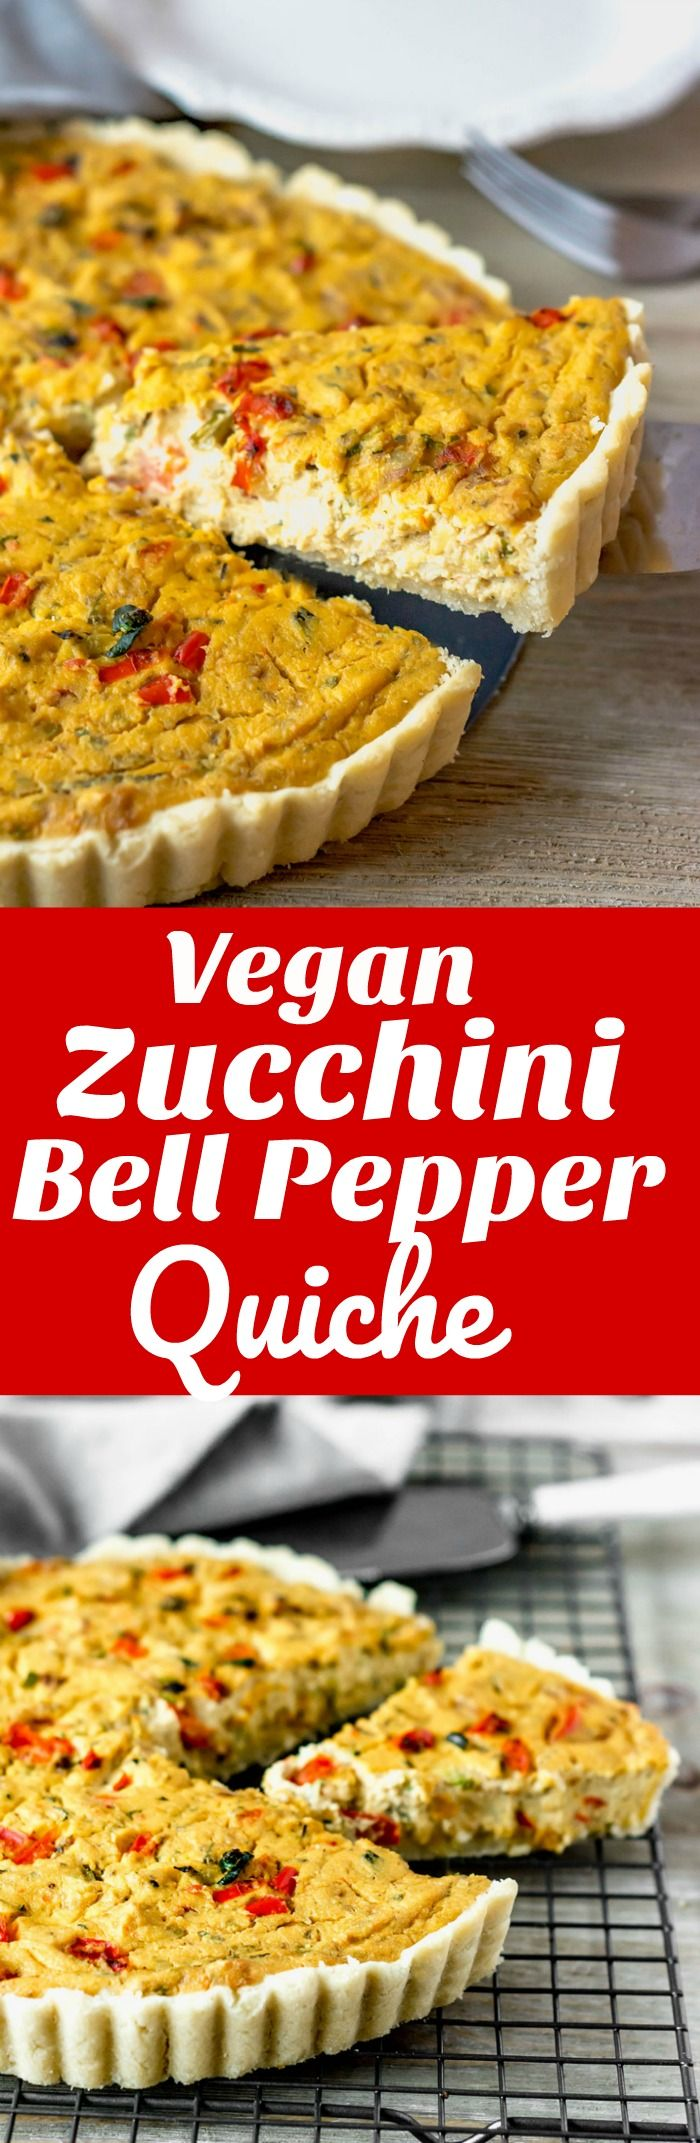 Vegan Zucchini Bell Pepper Tofu Quiche, full of flavor with a melt-your-mouth hit. Perfect for breakfast, brunch or dinner! #vegan #gluten-free #quiche